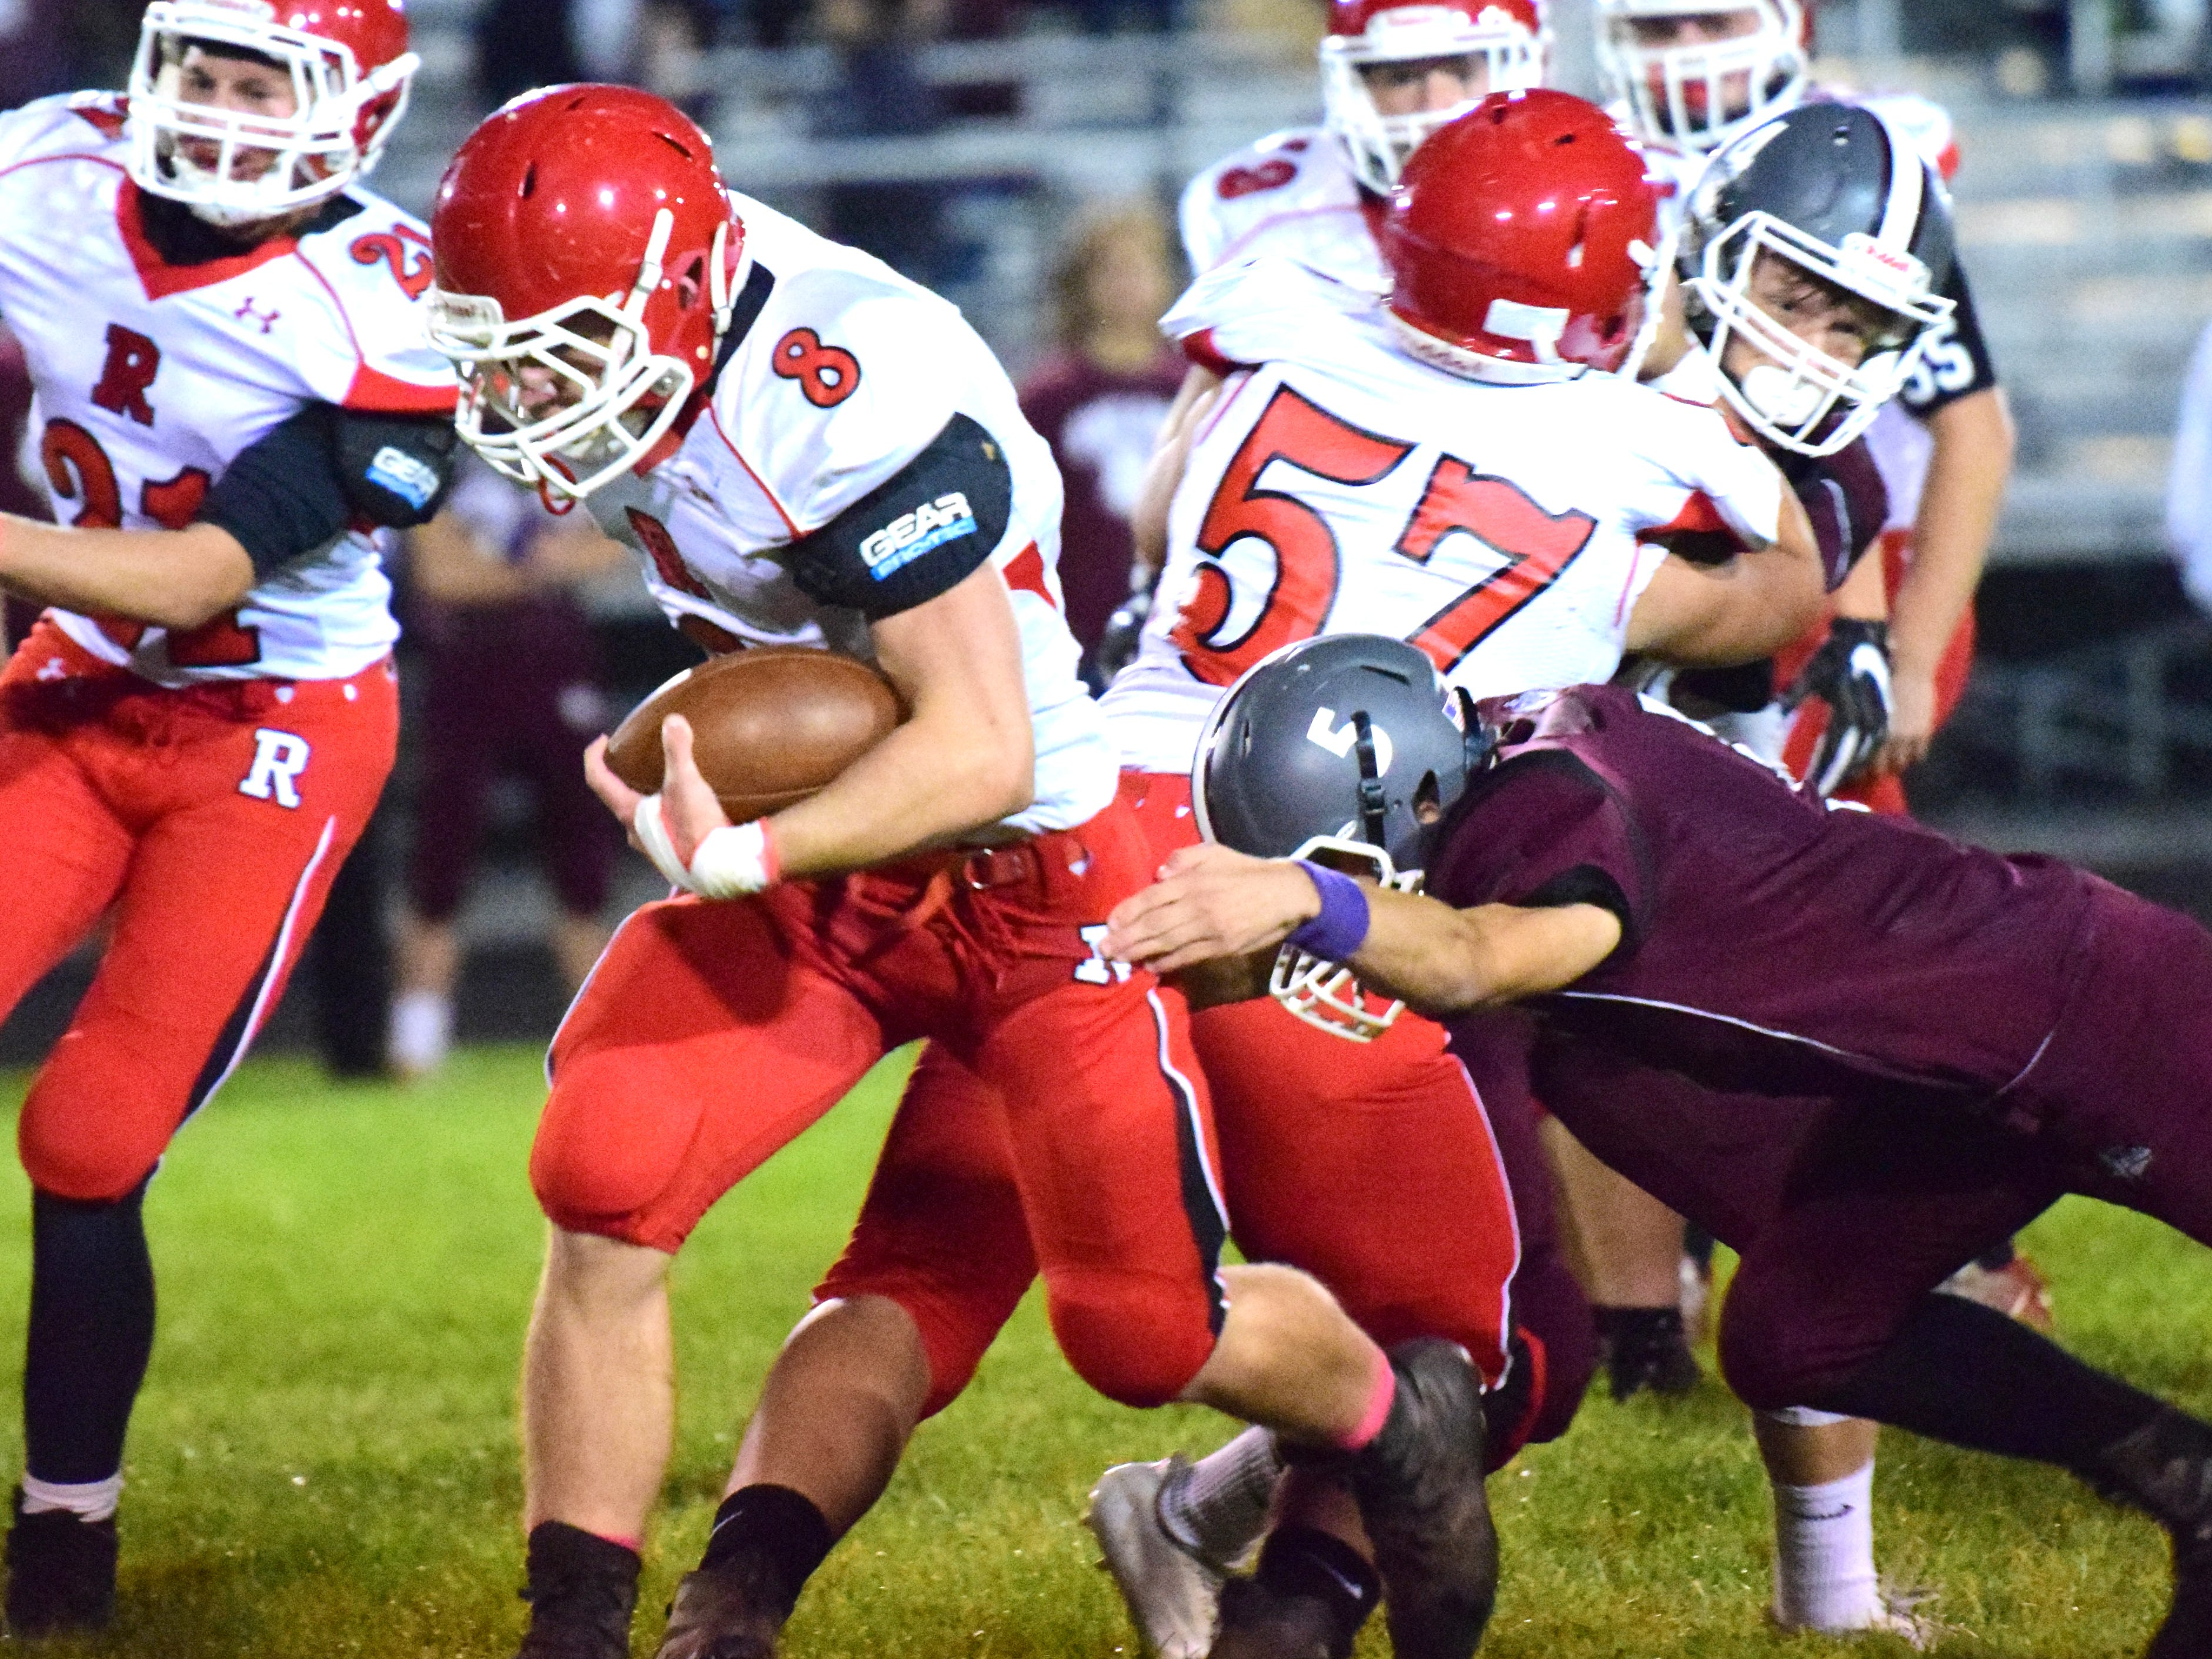 Riverheads' Zac Smiley plows through a Luray defender for extra yardage during the Gladiators' 56-13 victory Friday over the Bulldogs. It was Riverheads' fourth straight win and has them in the top spot in the Class 1 power point raitings this week.